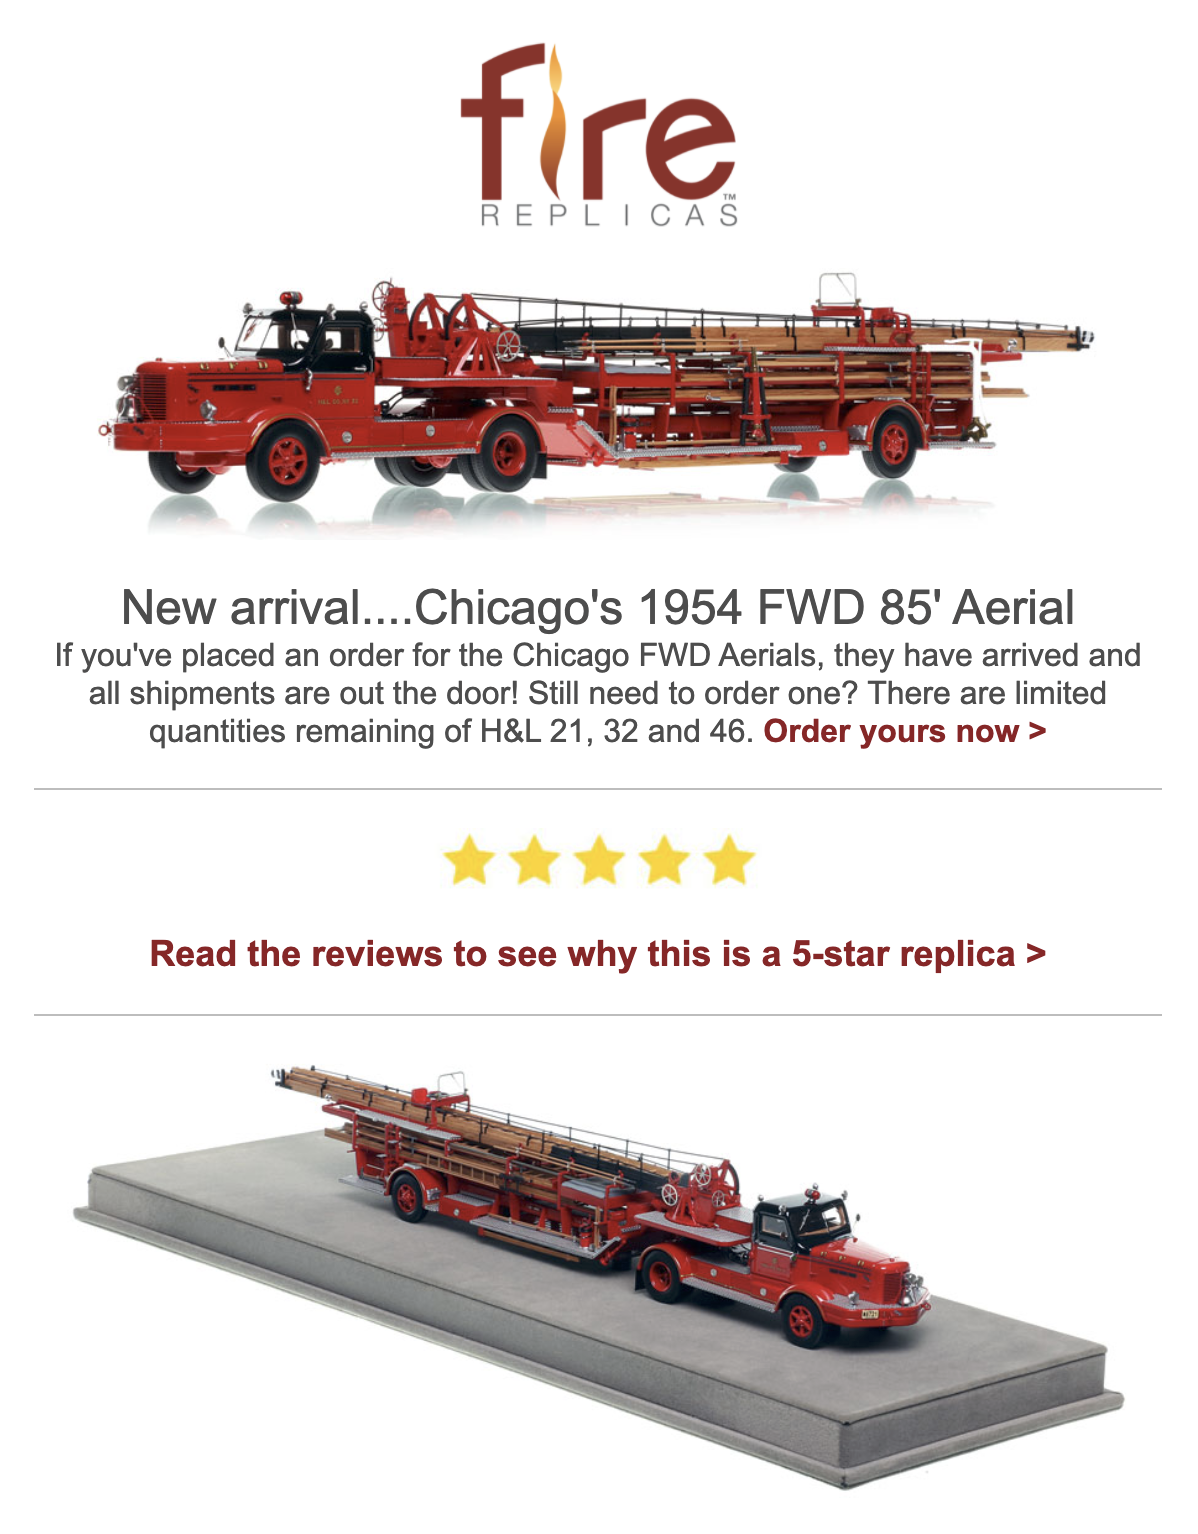 Fire Replicas Classic Chicago 1954 FWD Tillered aerial ladder model